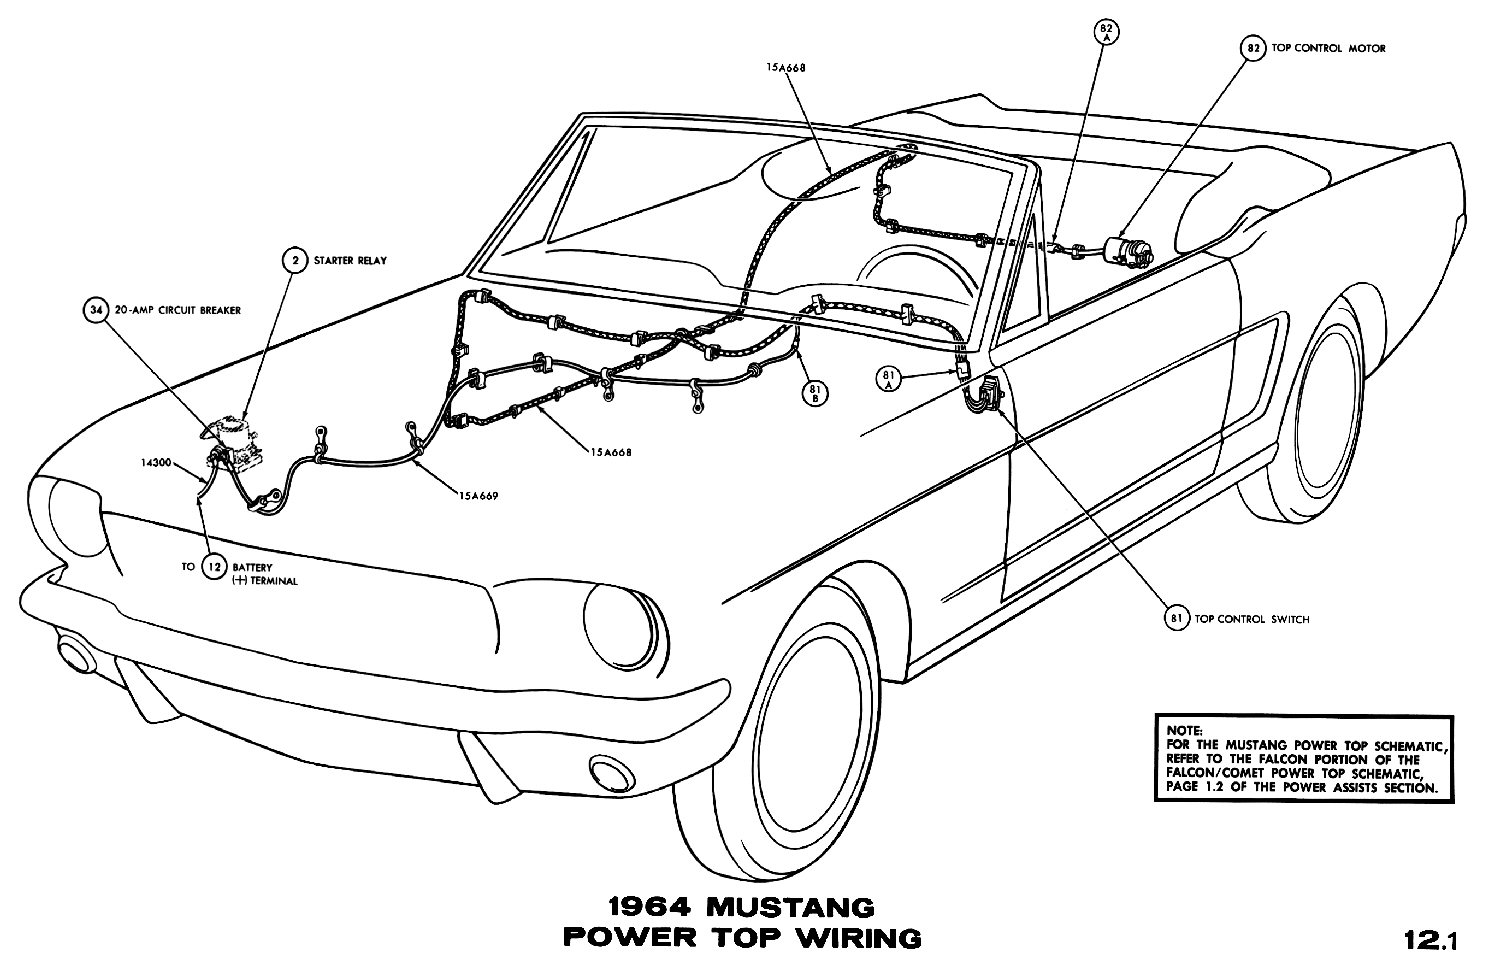 1964 mustang power top pictorial or schematic